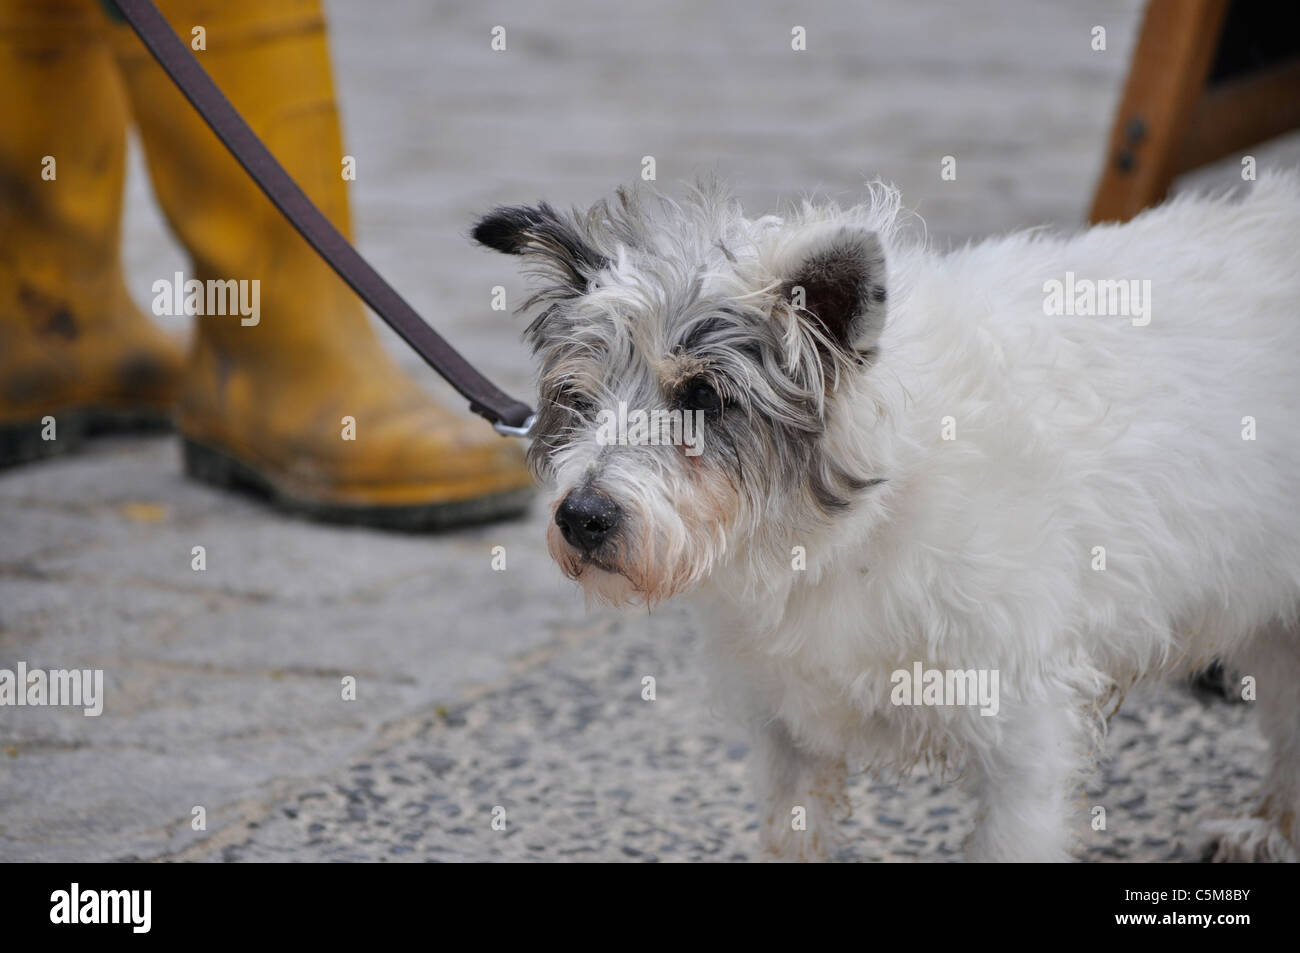 Wire Haired Jack Russell Stock Photos & Wire Haired Jack Russell ...